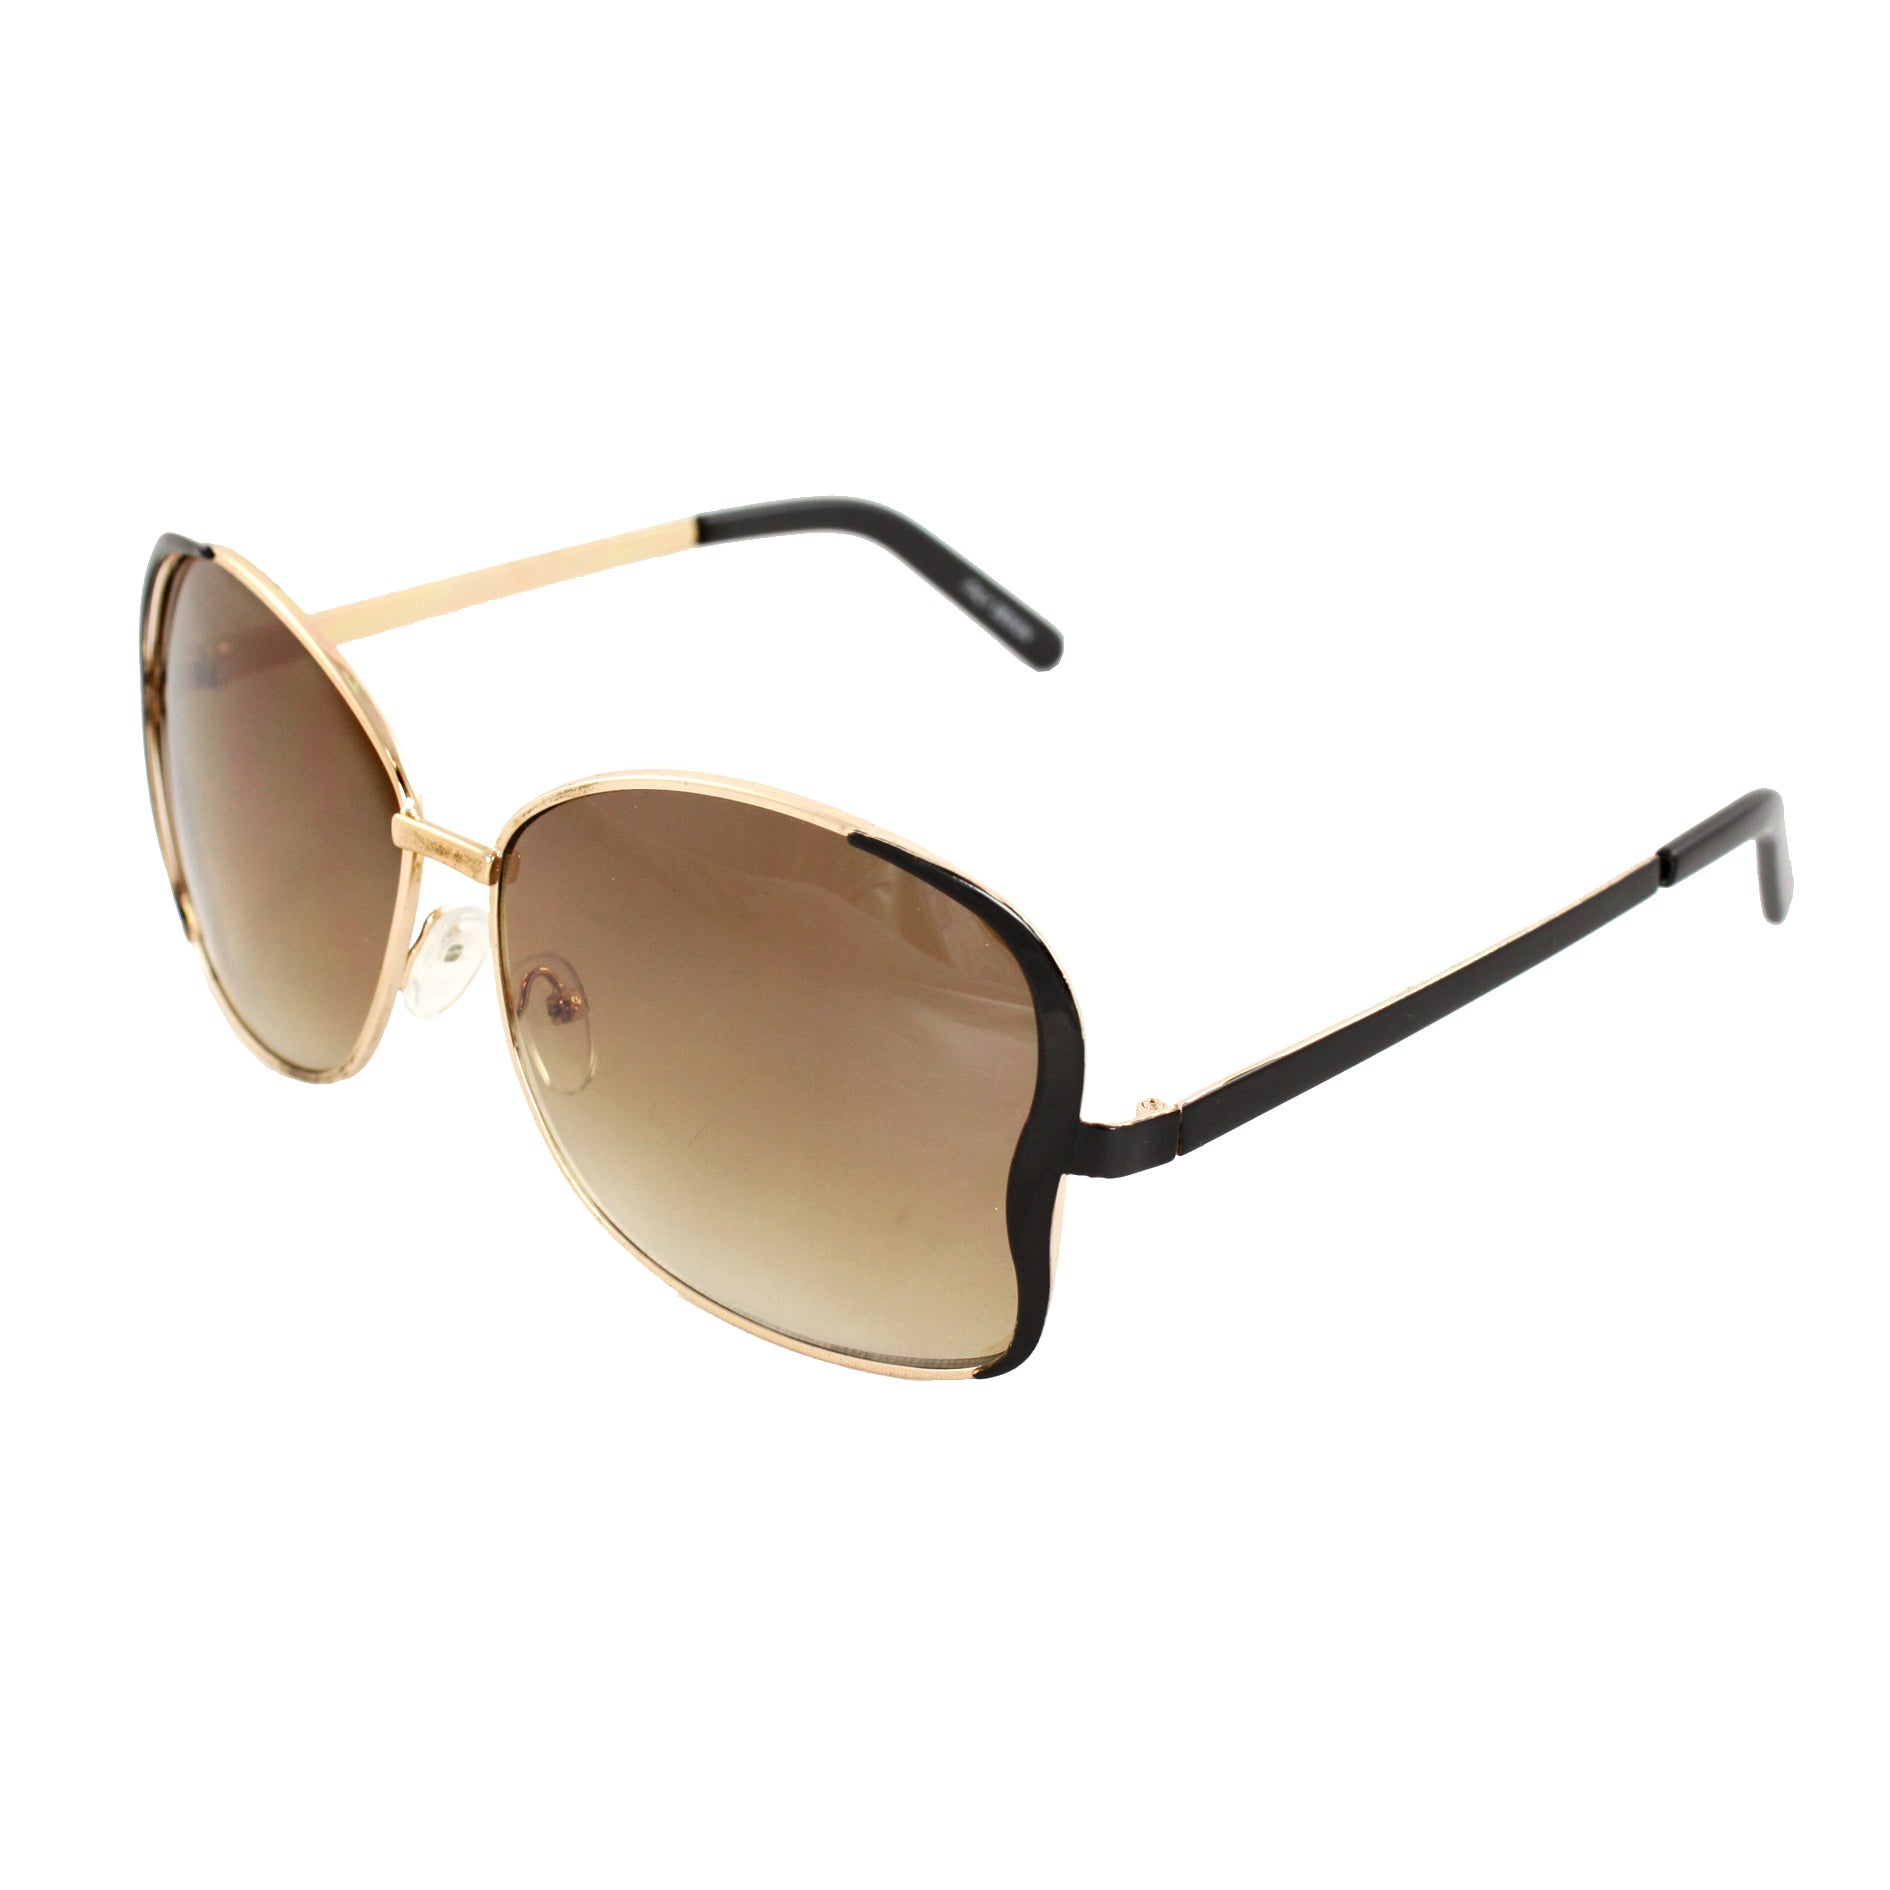 Stylish Butterfly Sunglasses Gold and Black Frame Amber Lenses for Women and Men